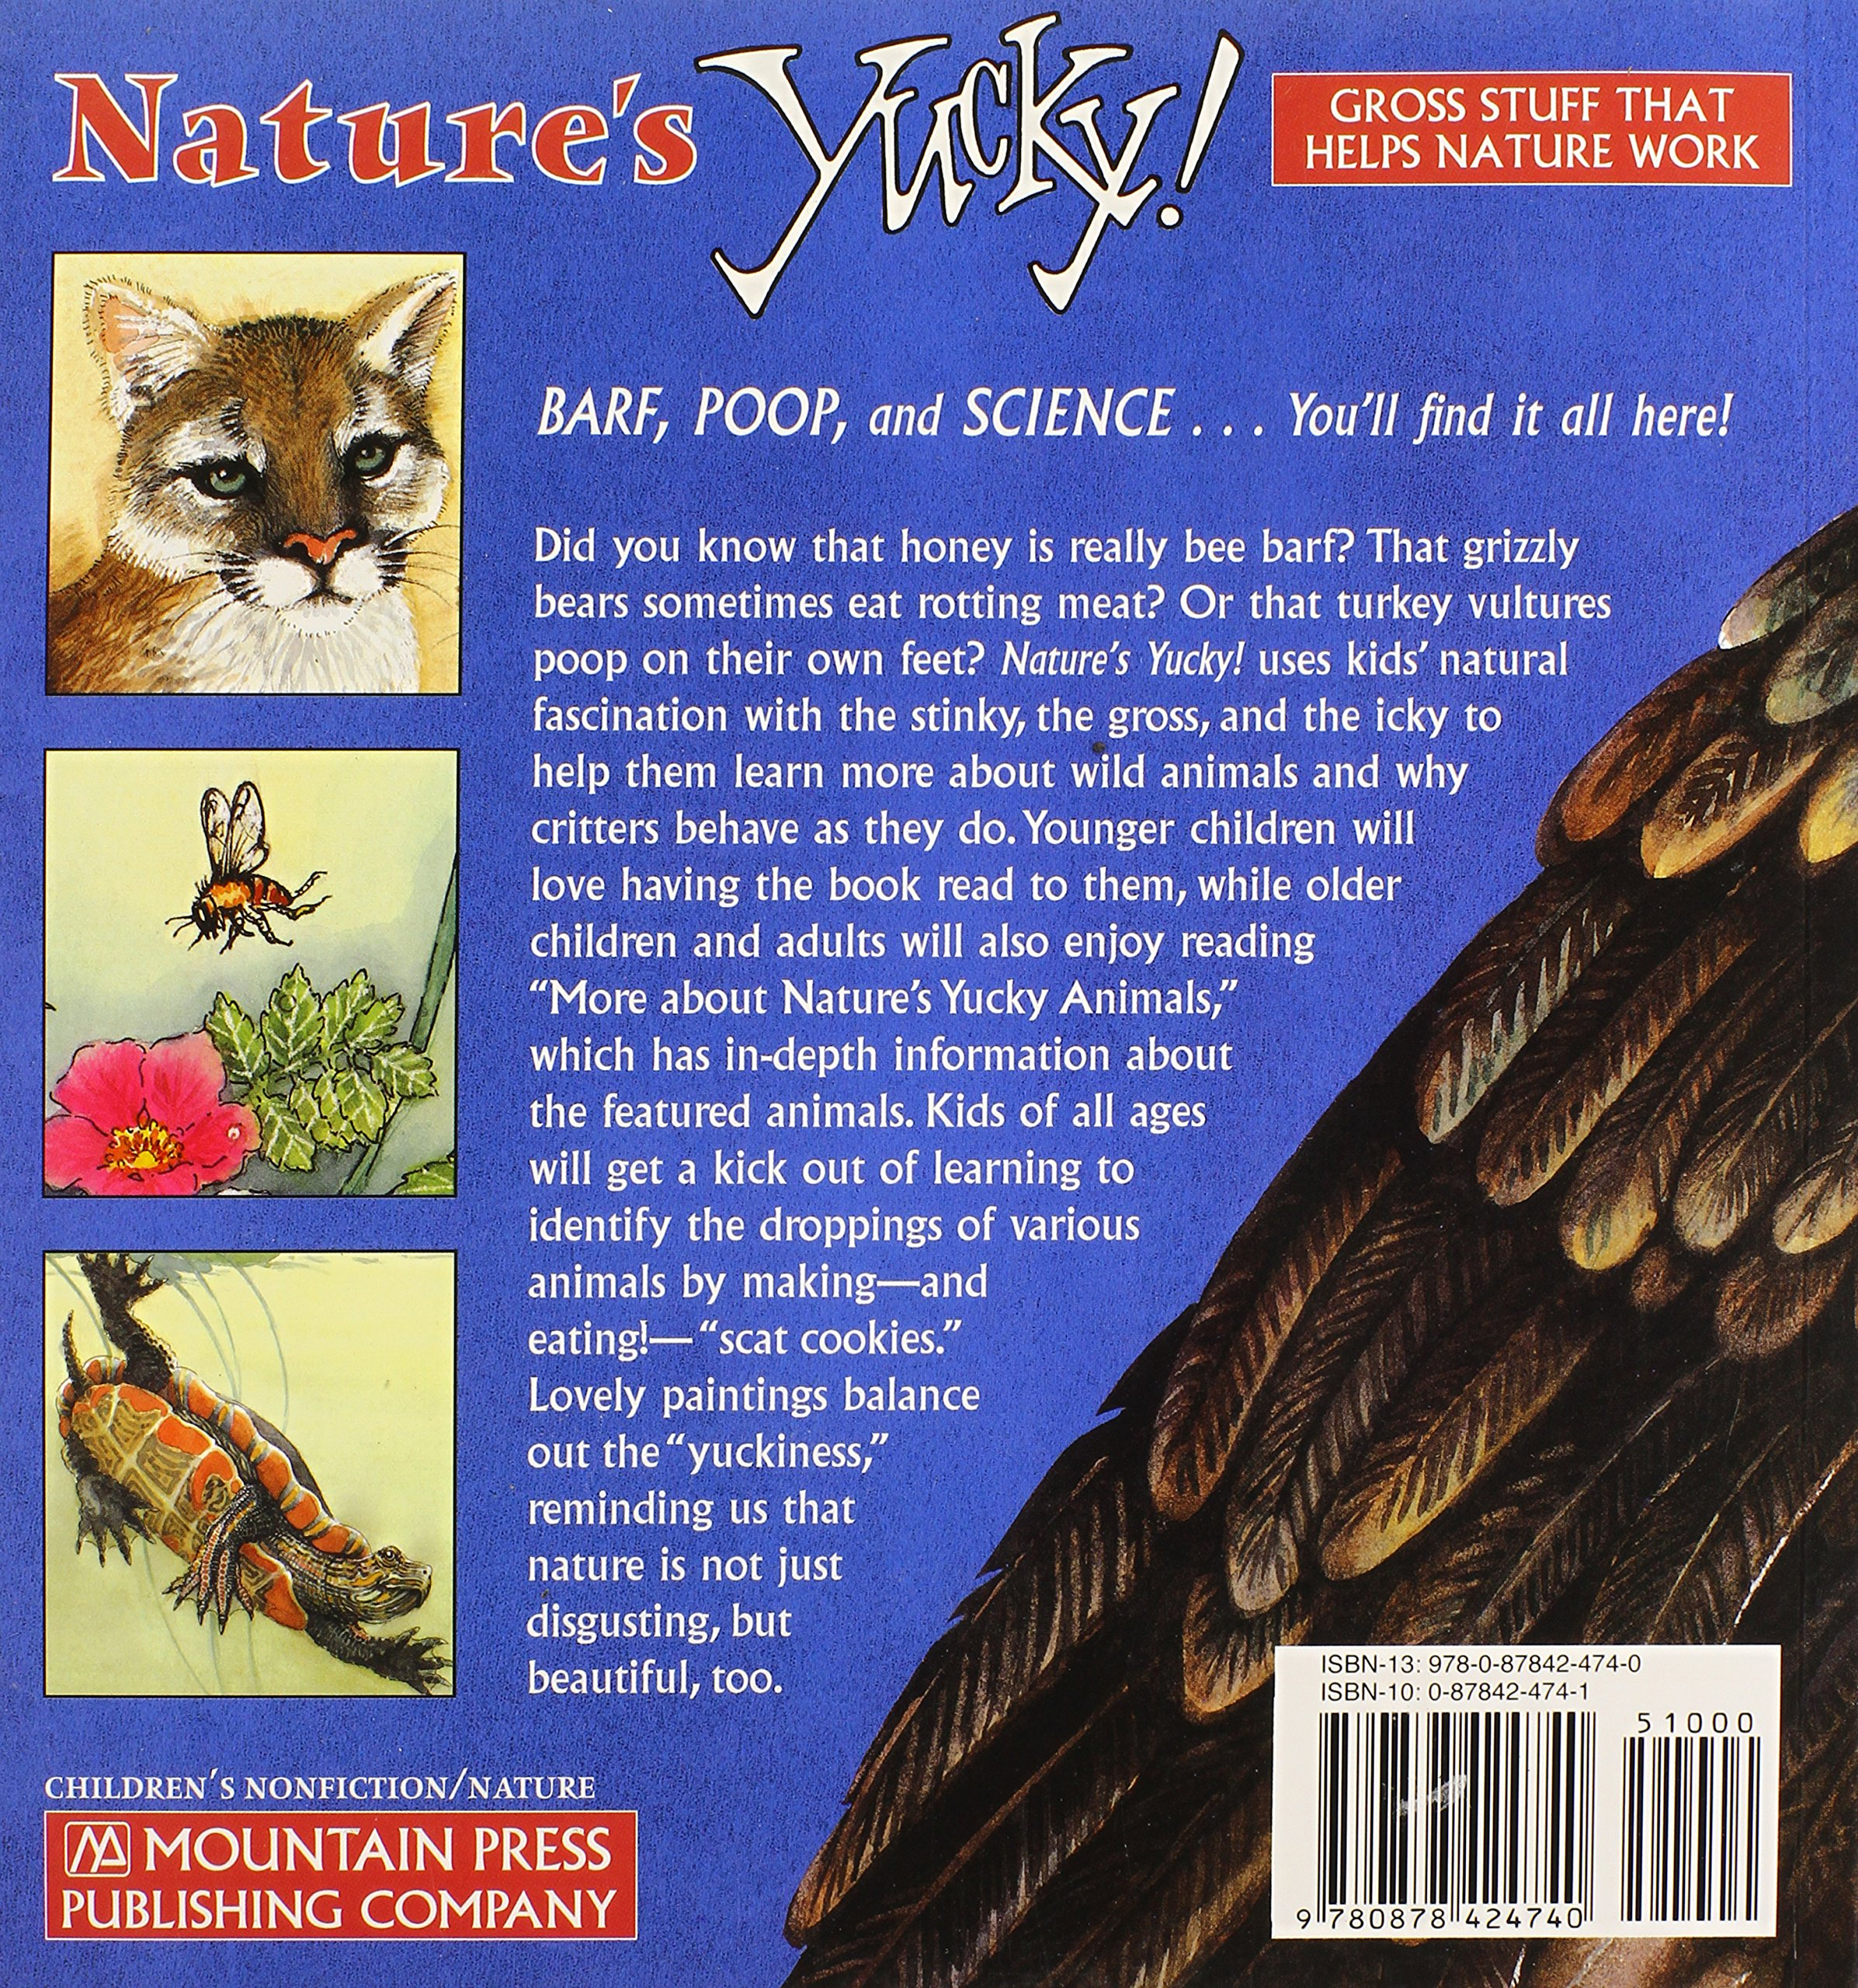 Amazon natures yucky gross stuff that helps nature work amazon natures yucky gross stuff that helps nature work 9780878424740 lee ann landstrom karen i shragg constance r bergum books fandeluxe Choice Image